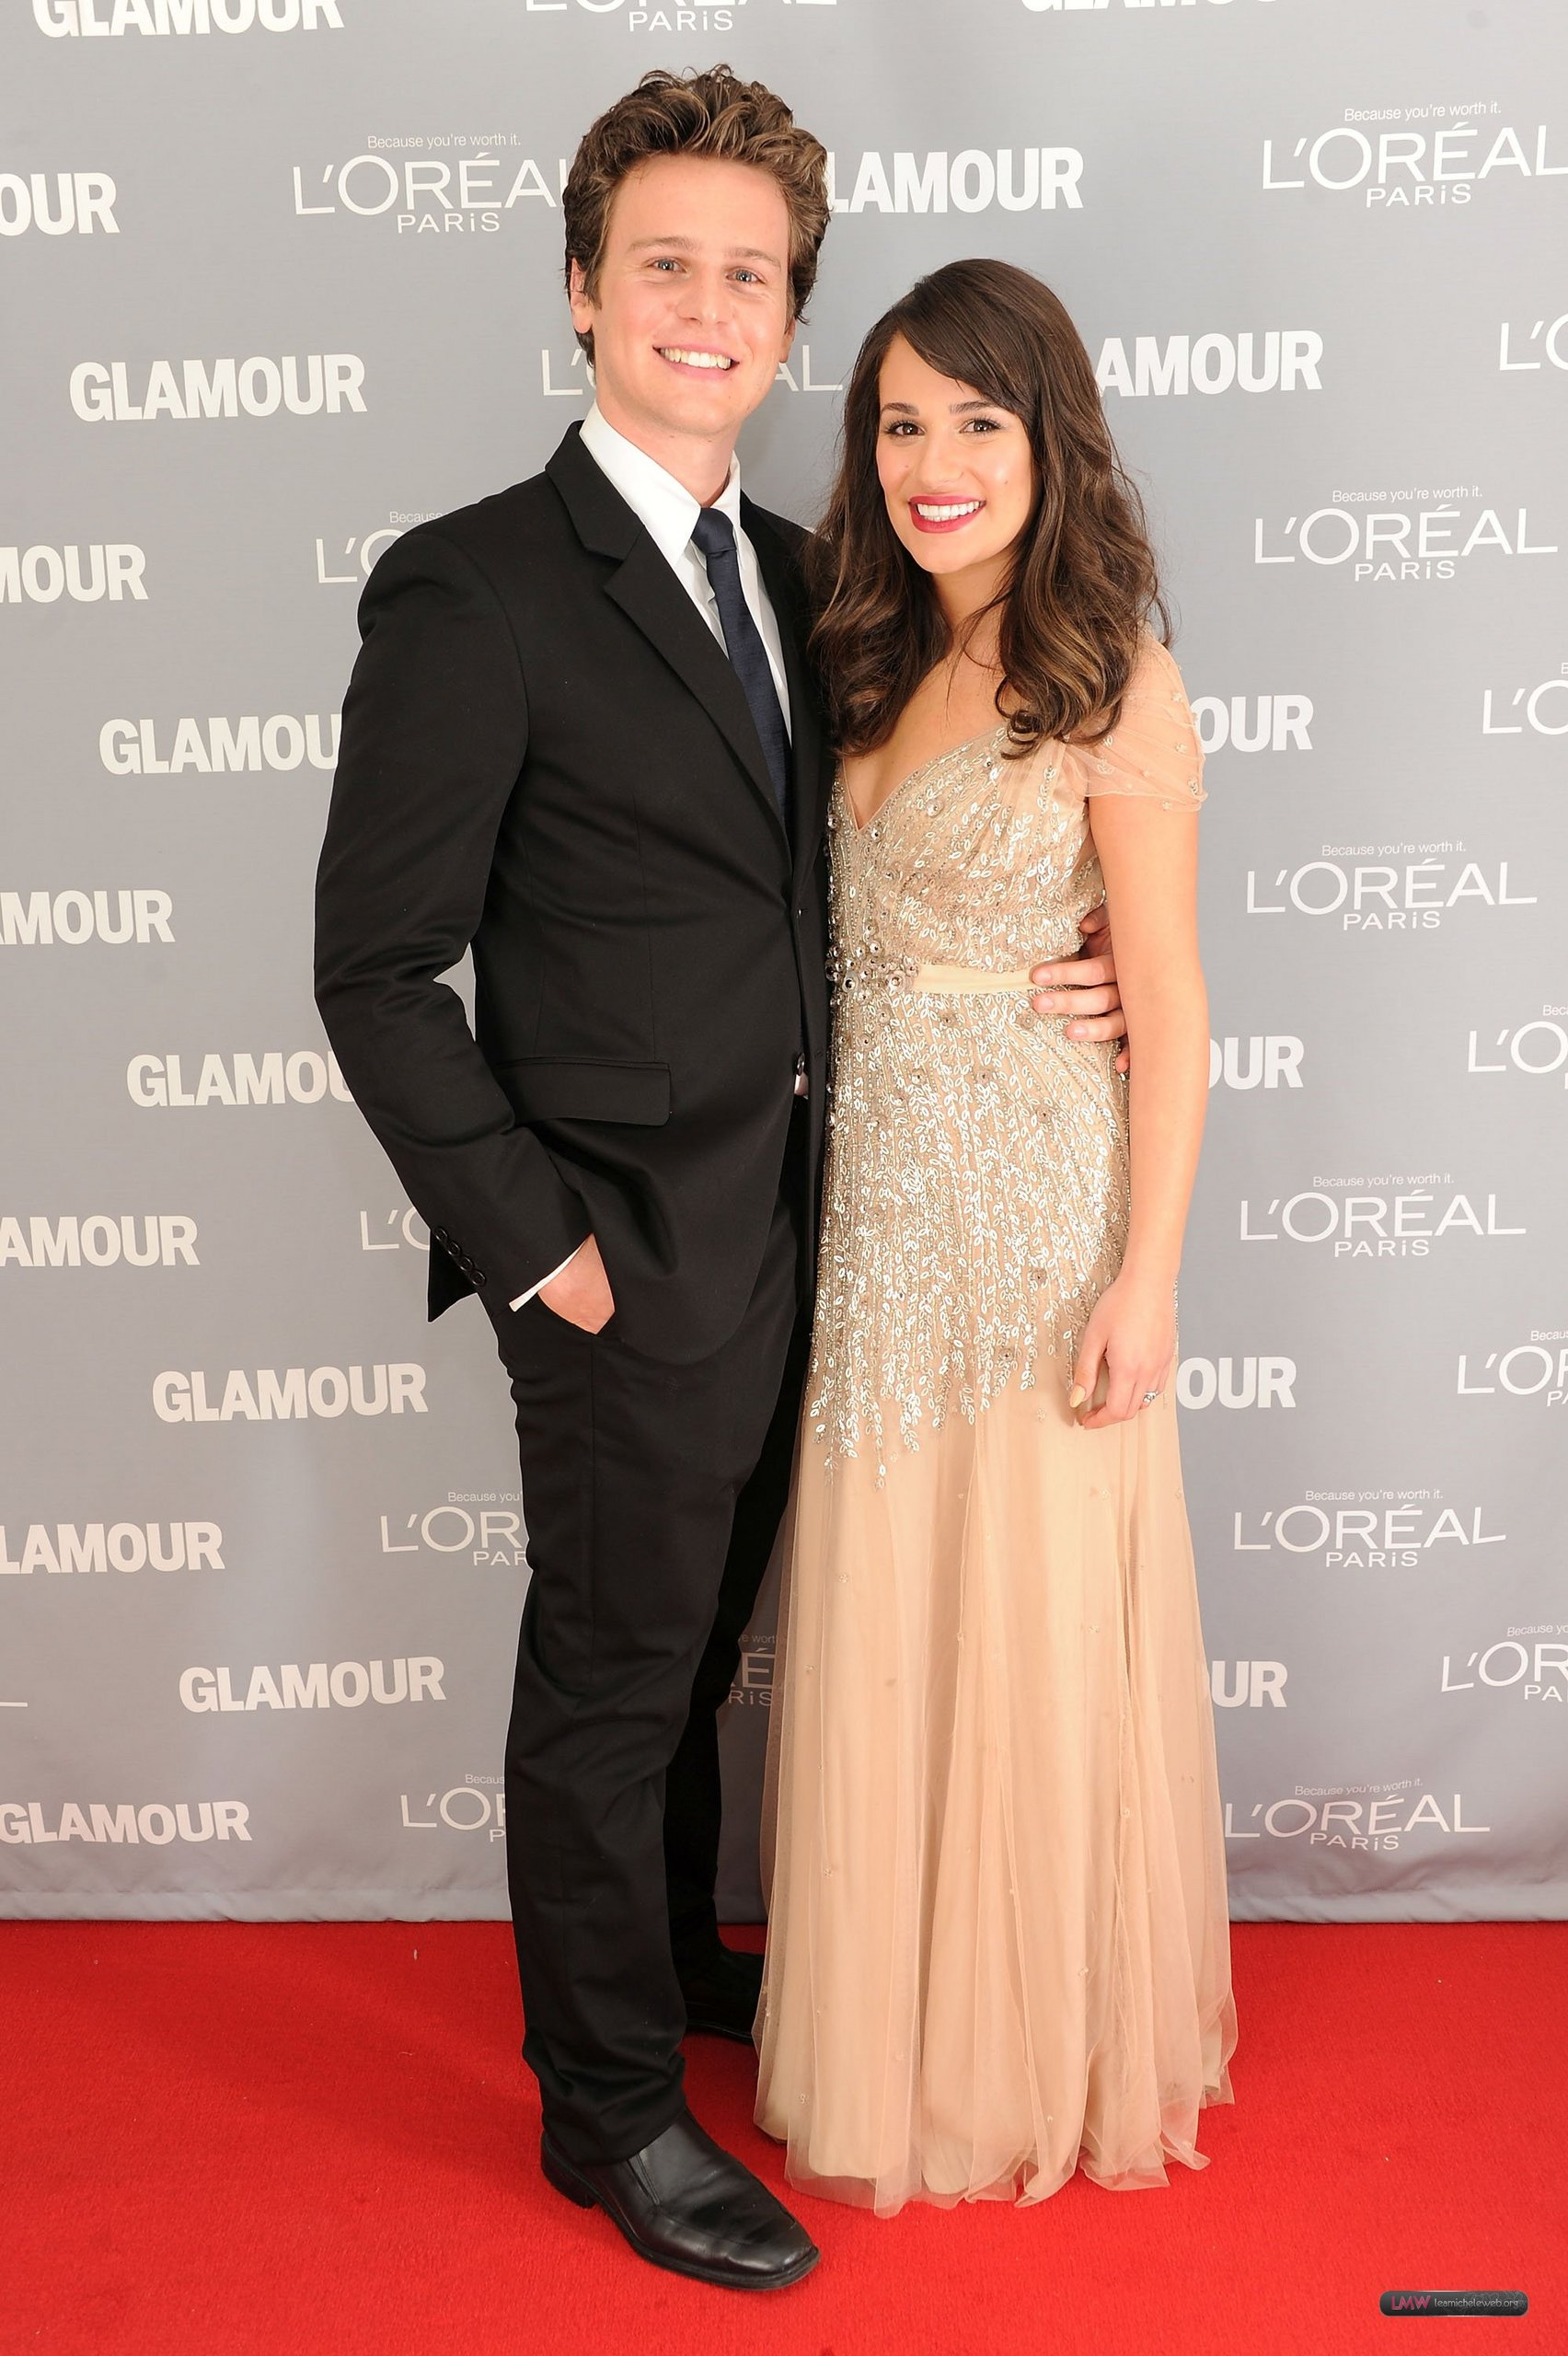 21st Annual Glamour Women Of The Year Awards - November 7, 2011